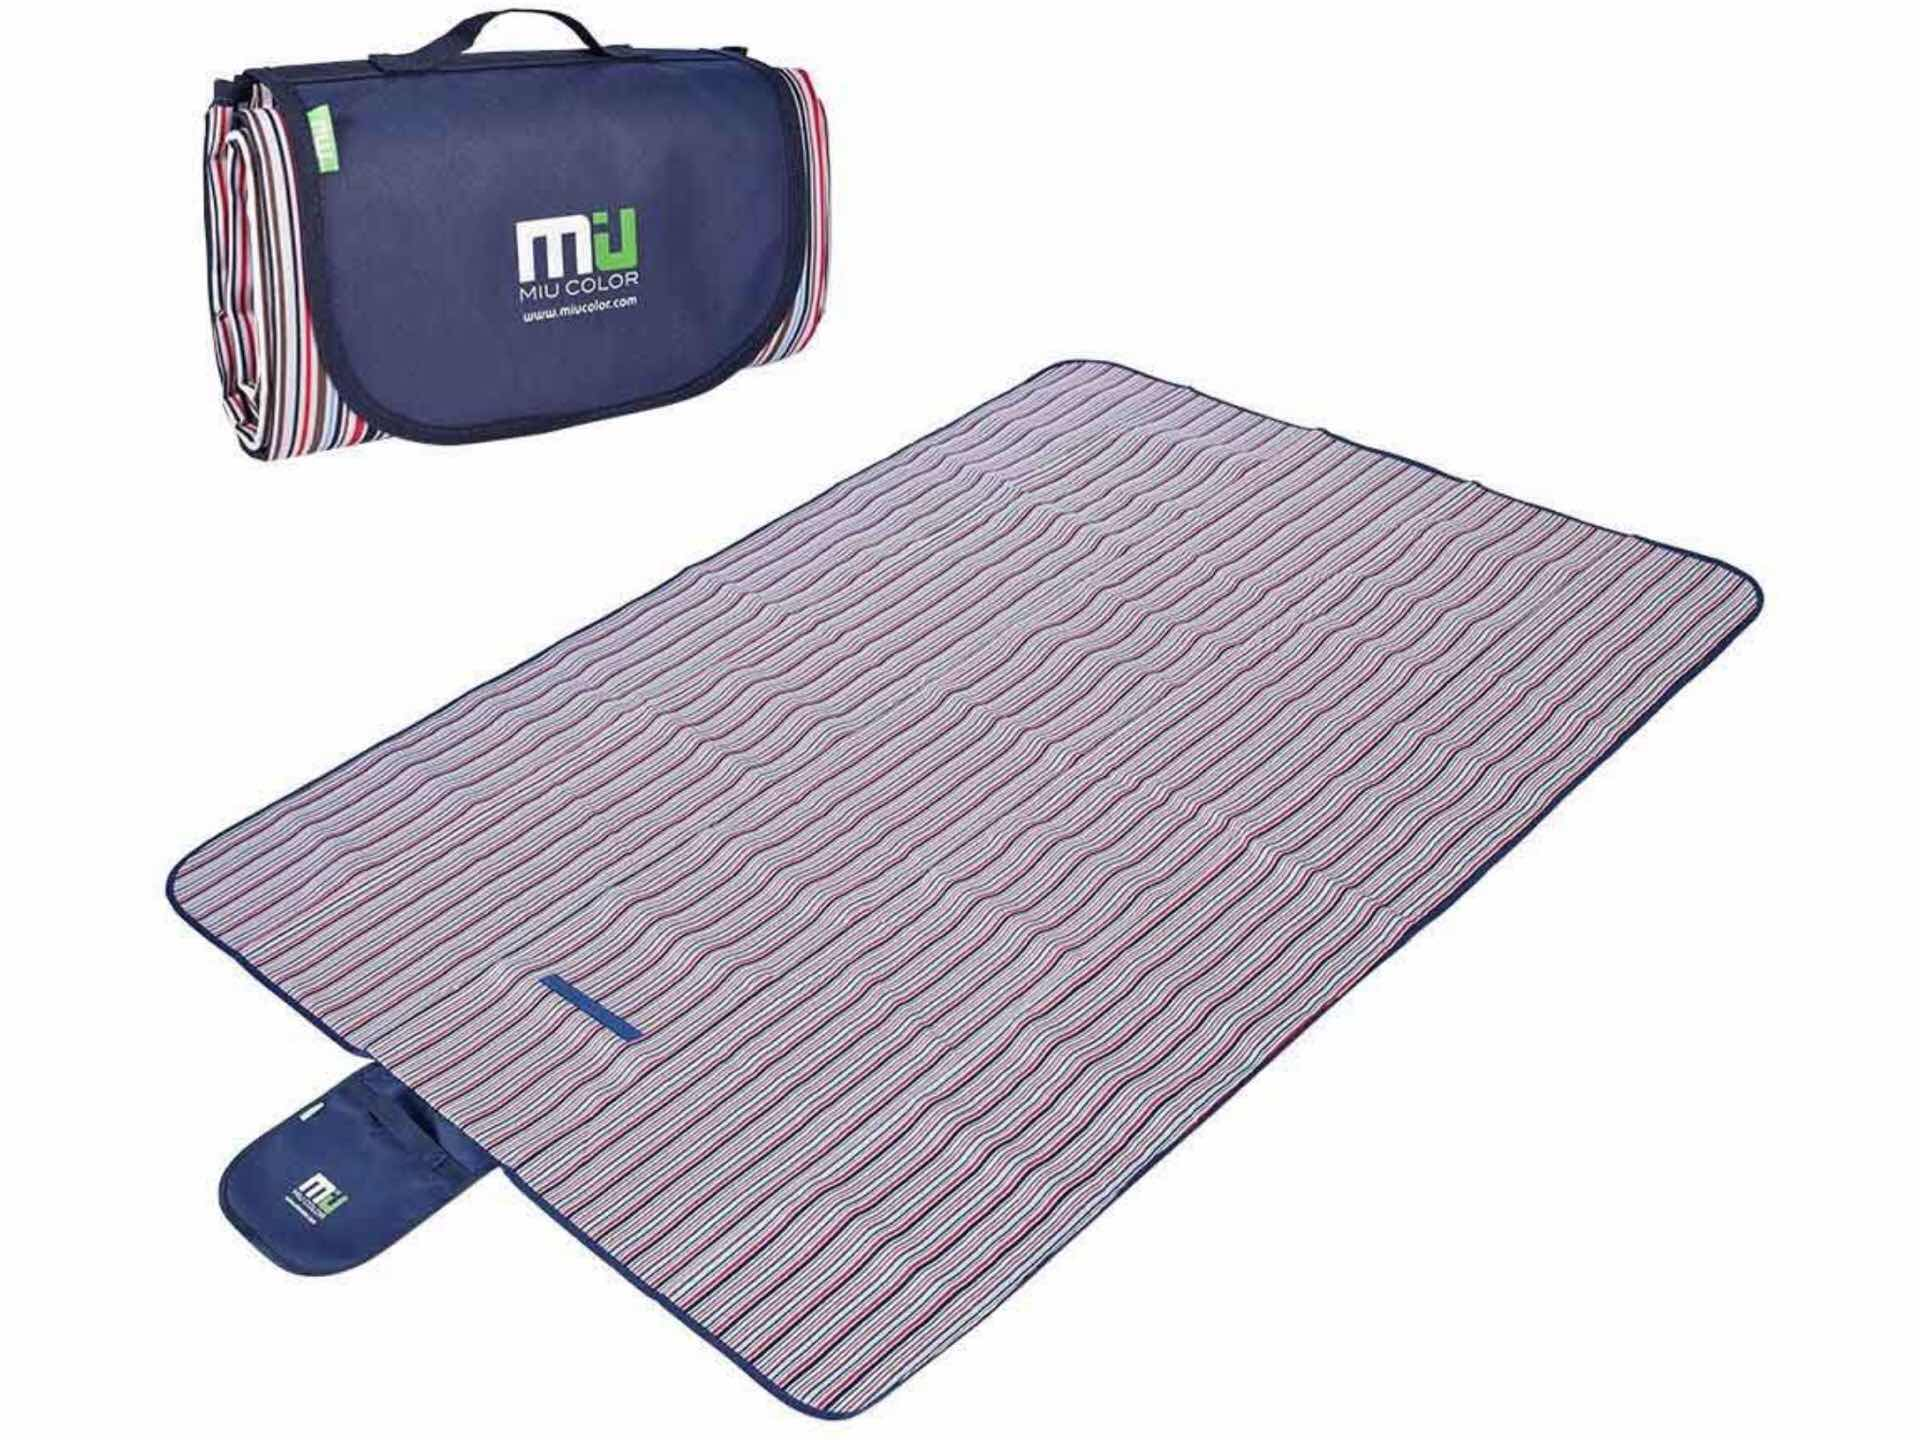 MIU COLOR waterproof and sandproof picnic blanket. ($17; available in three colors/patterns)